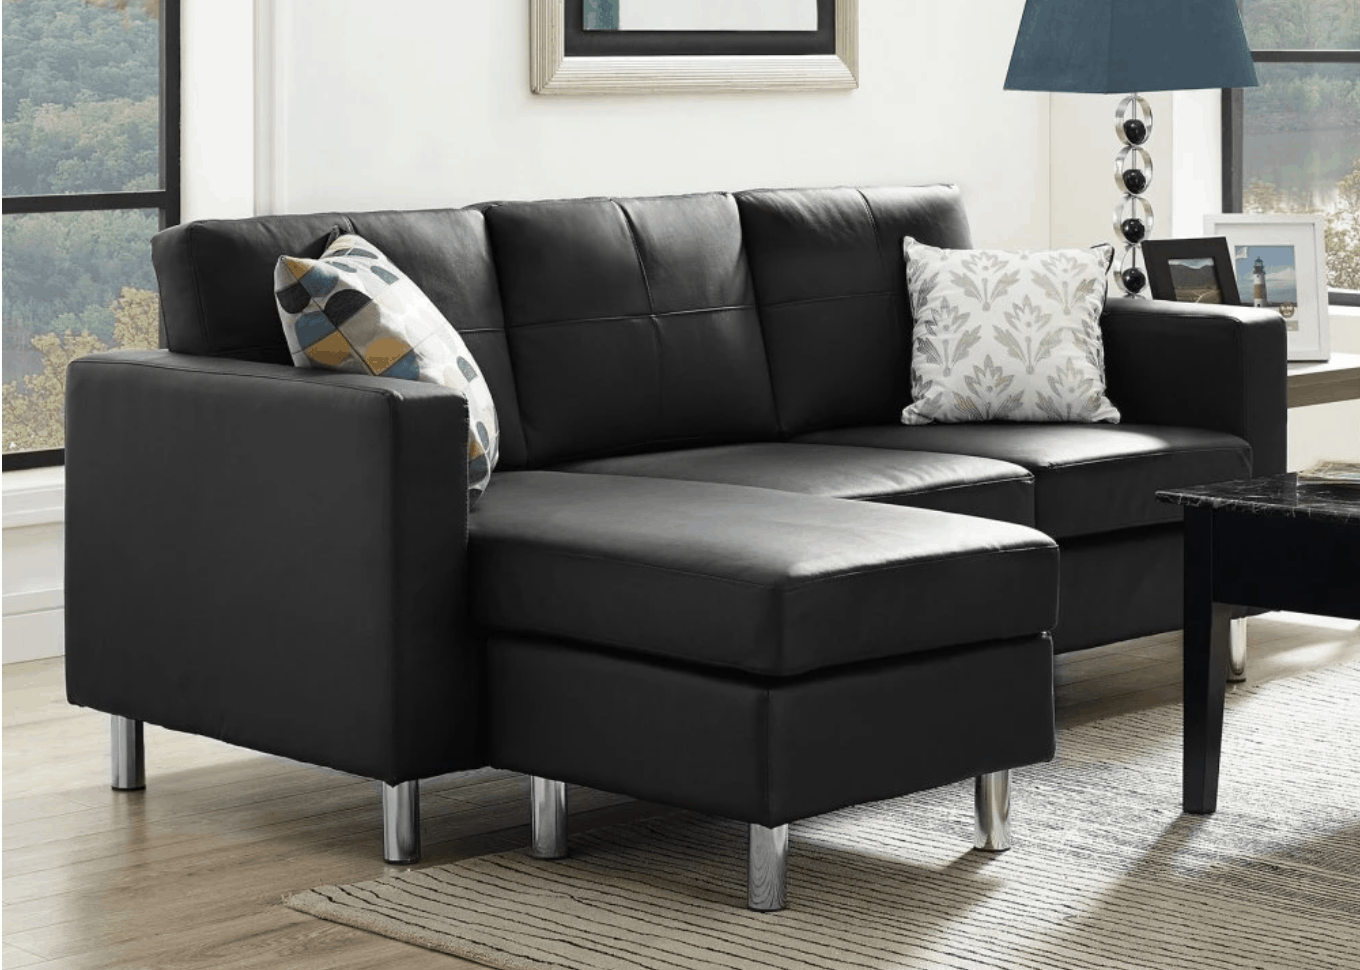 75 modern sectional sofas for small spaces 2018 - Modular sectional sofas for small spaces decoration ...